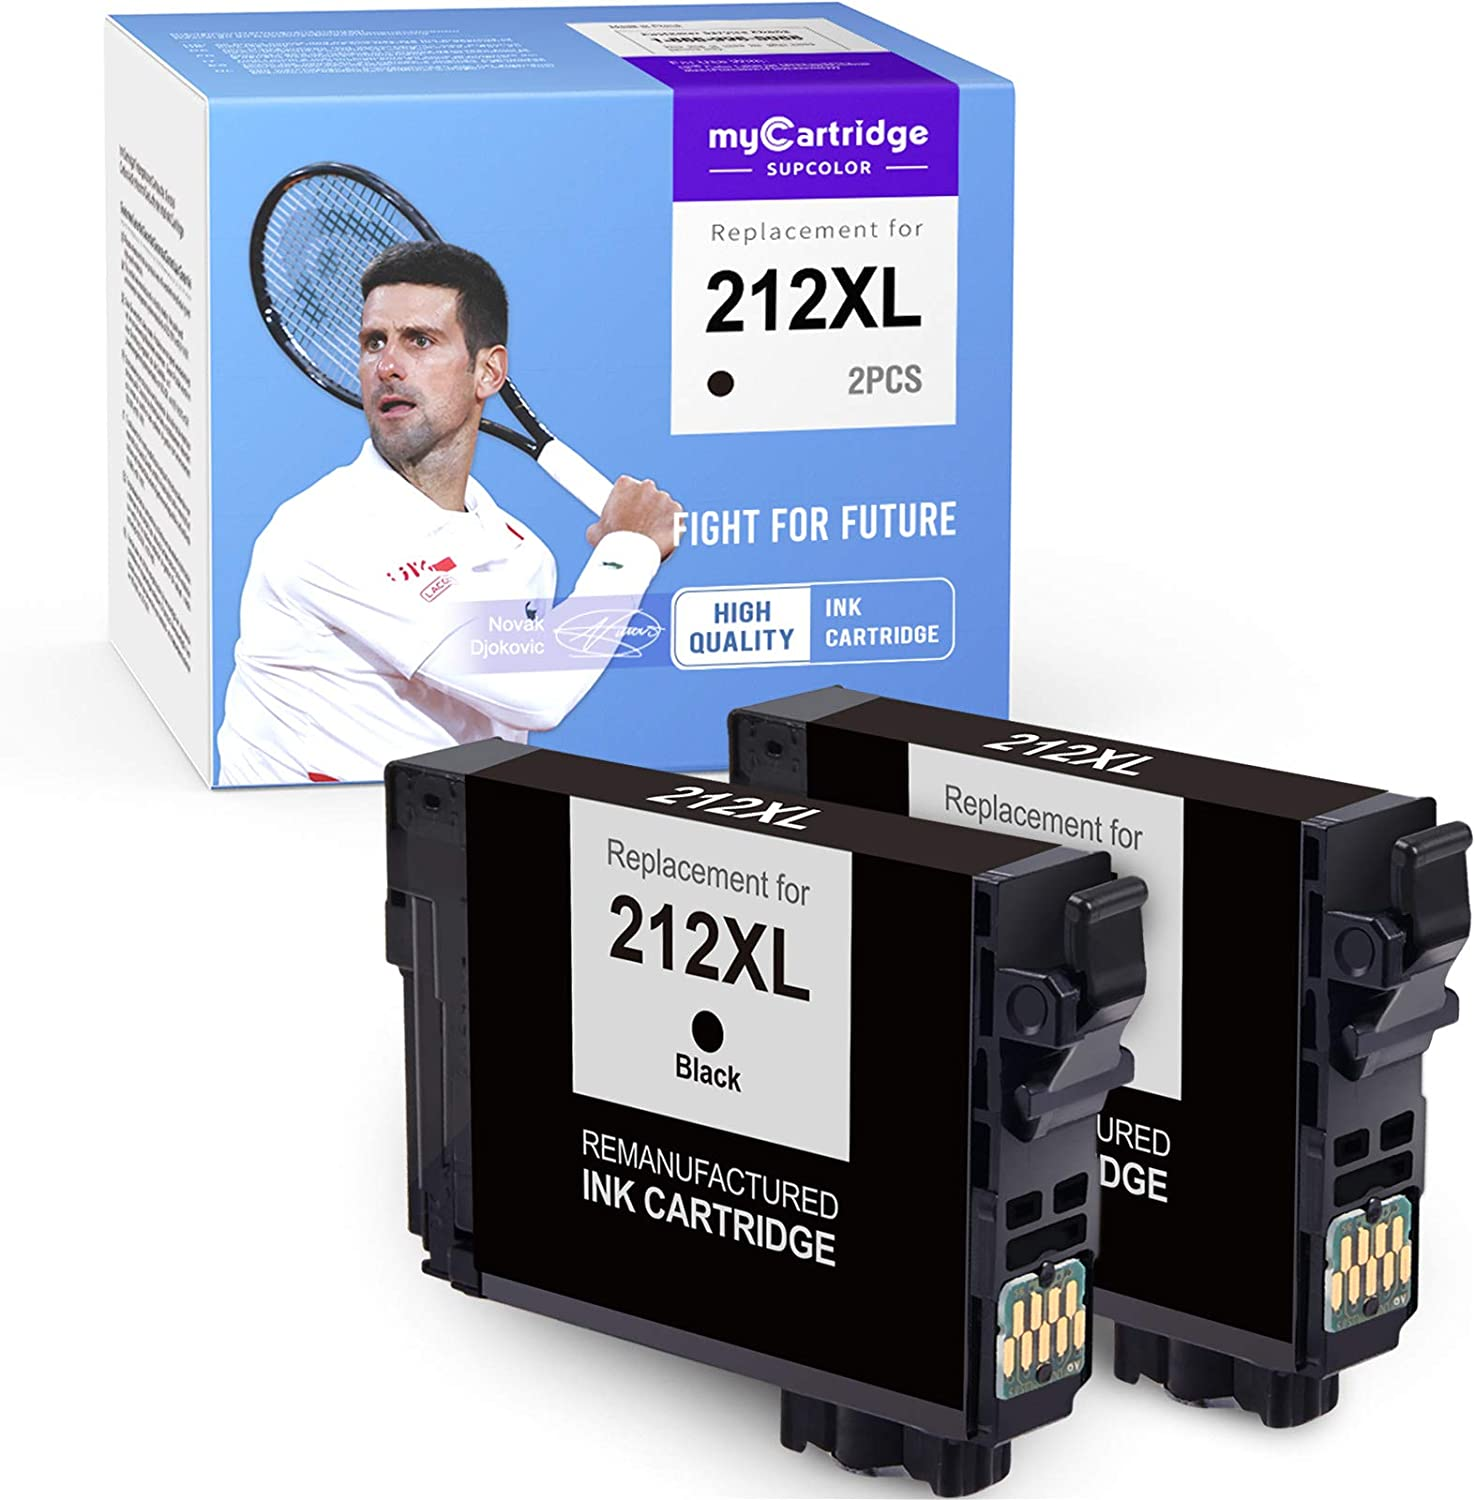 myCartridge SUPCOLOR Remanufactured Ink Cartridge Replacement for Epson 212 XL 212XL T212XL for Workforce WF-2850 WF-2830 Expression Home XP-4100 XP-4105, 2Black